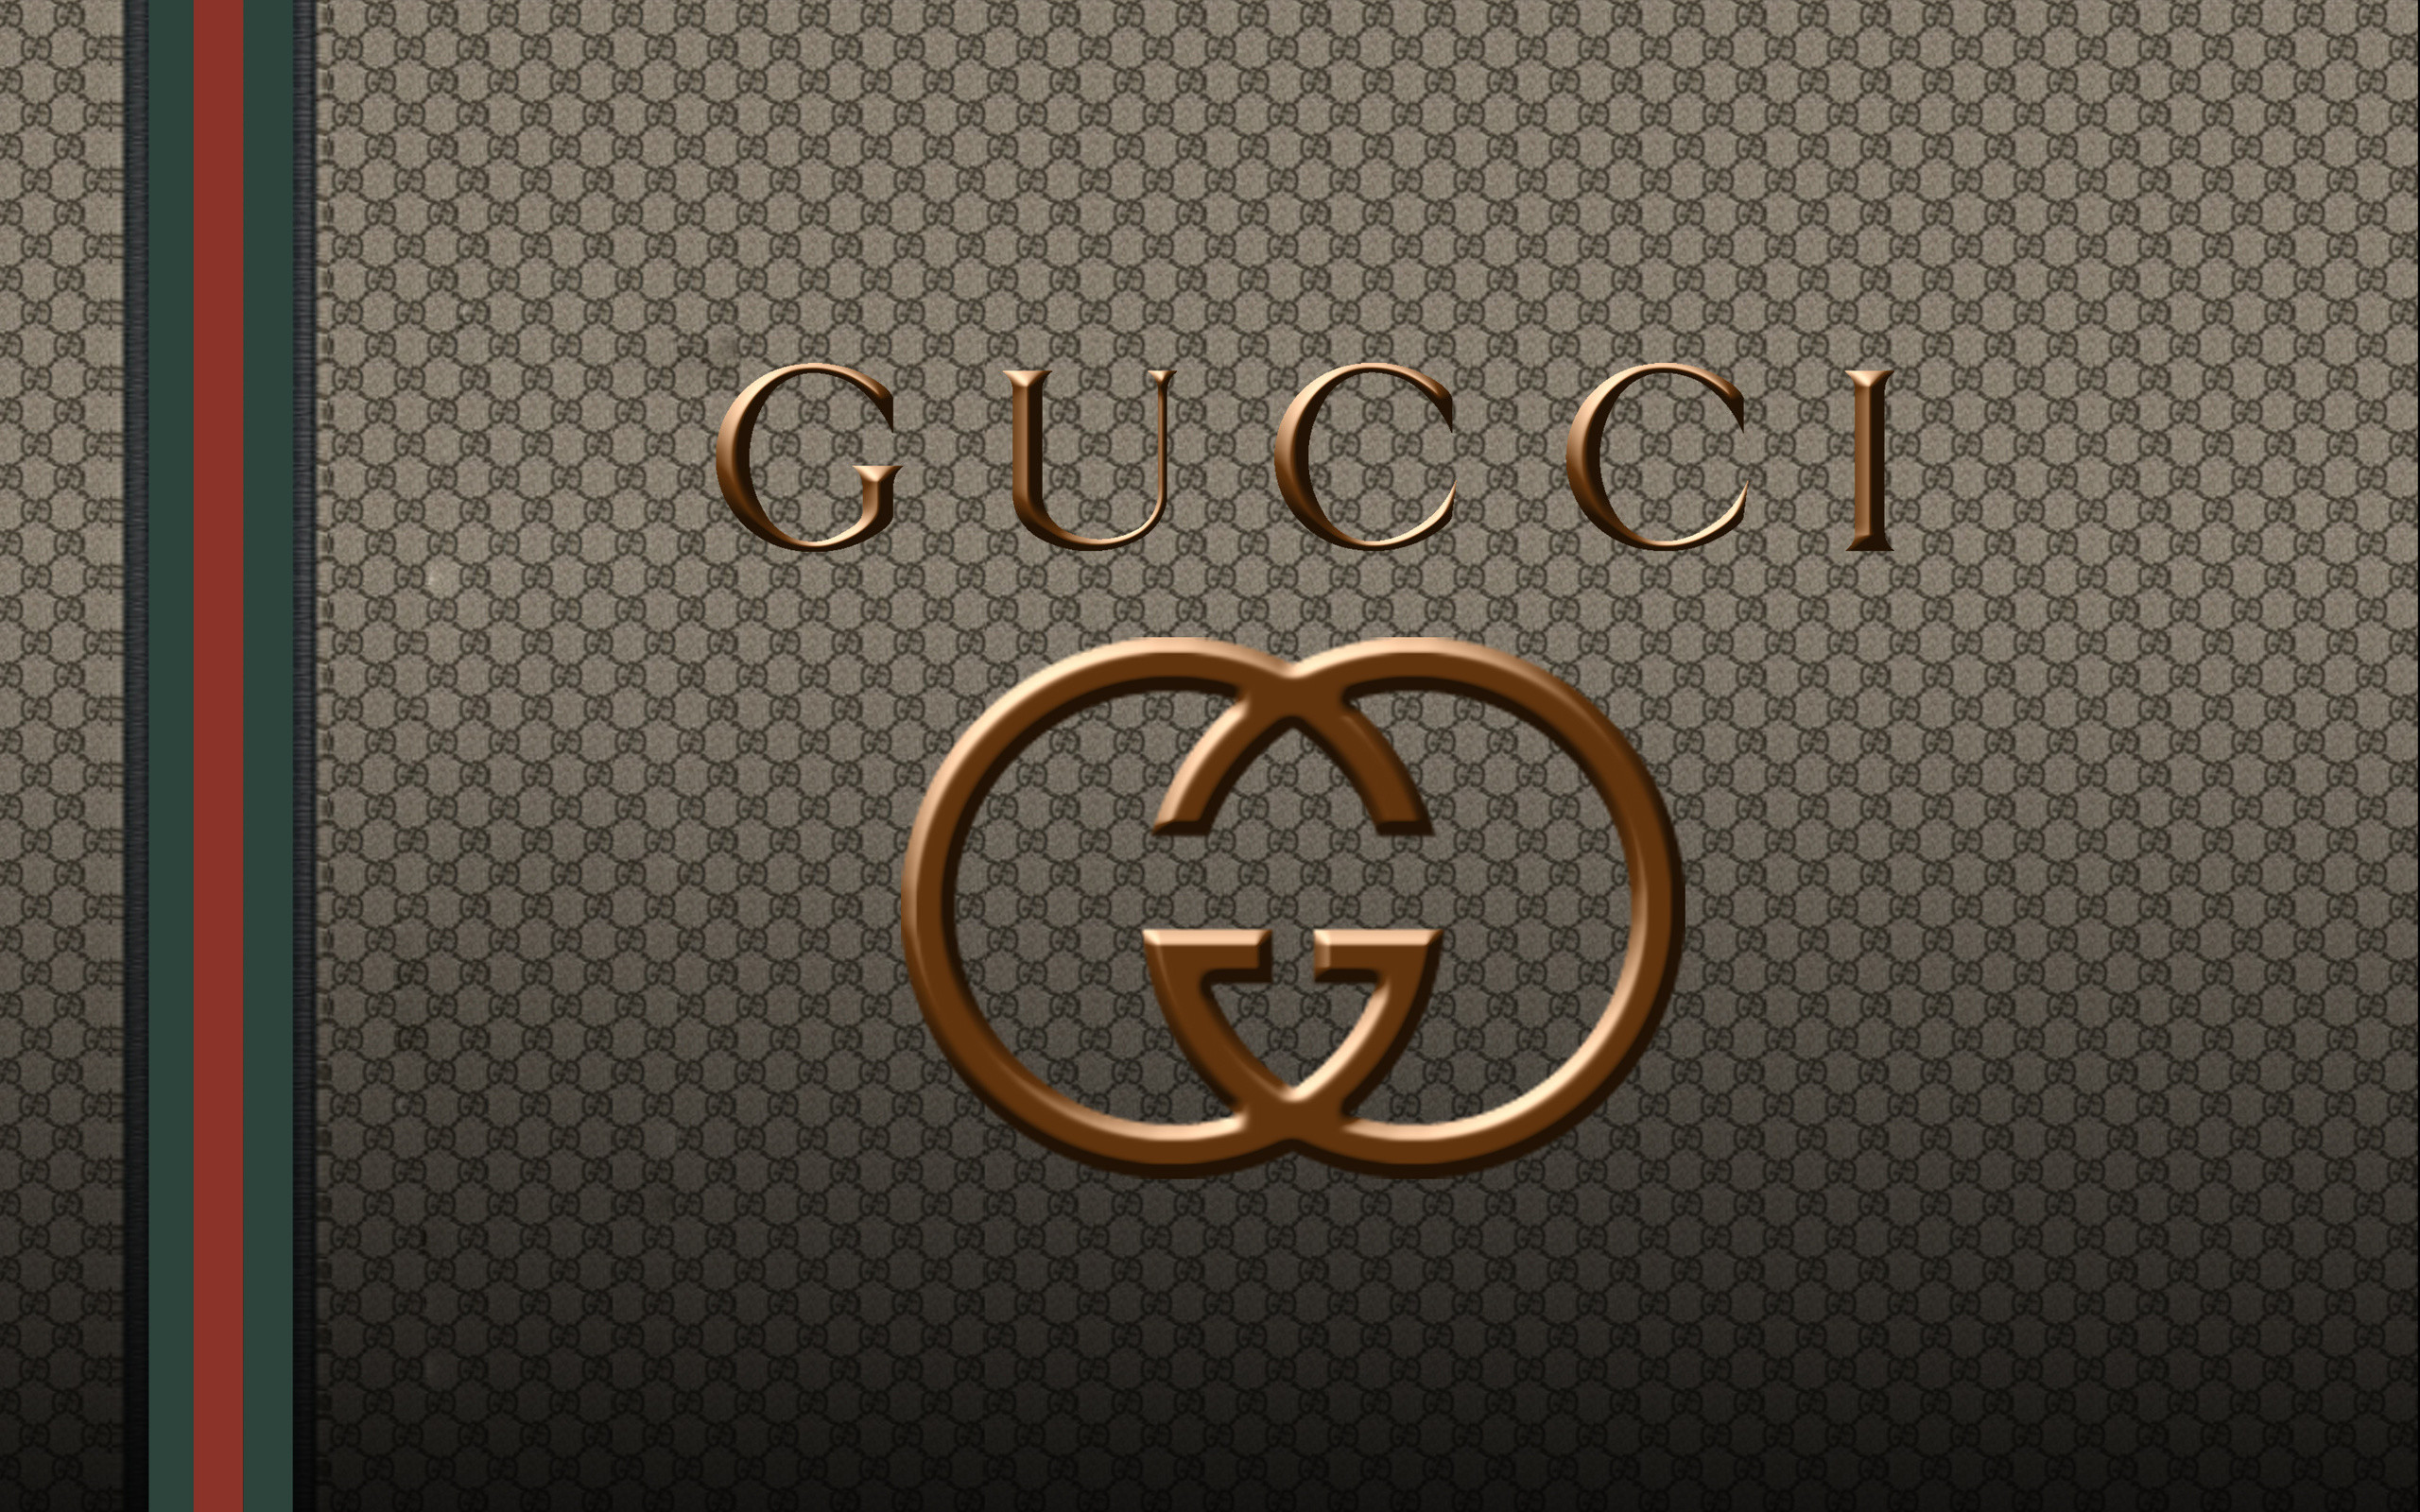 gucci logo. 2560x1600 gucci-logo-wallpapers-hd-pictures-images gucci logo s